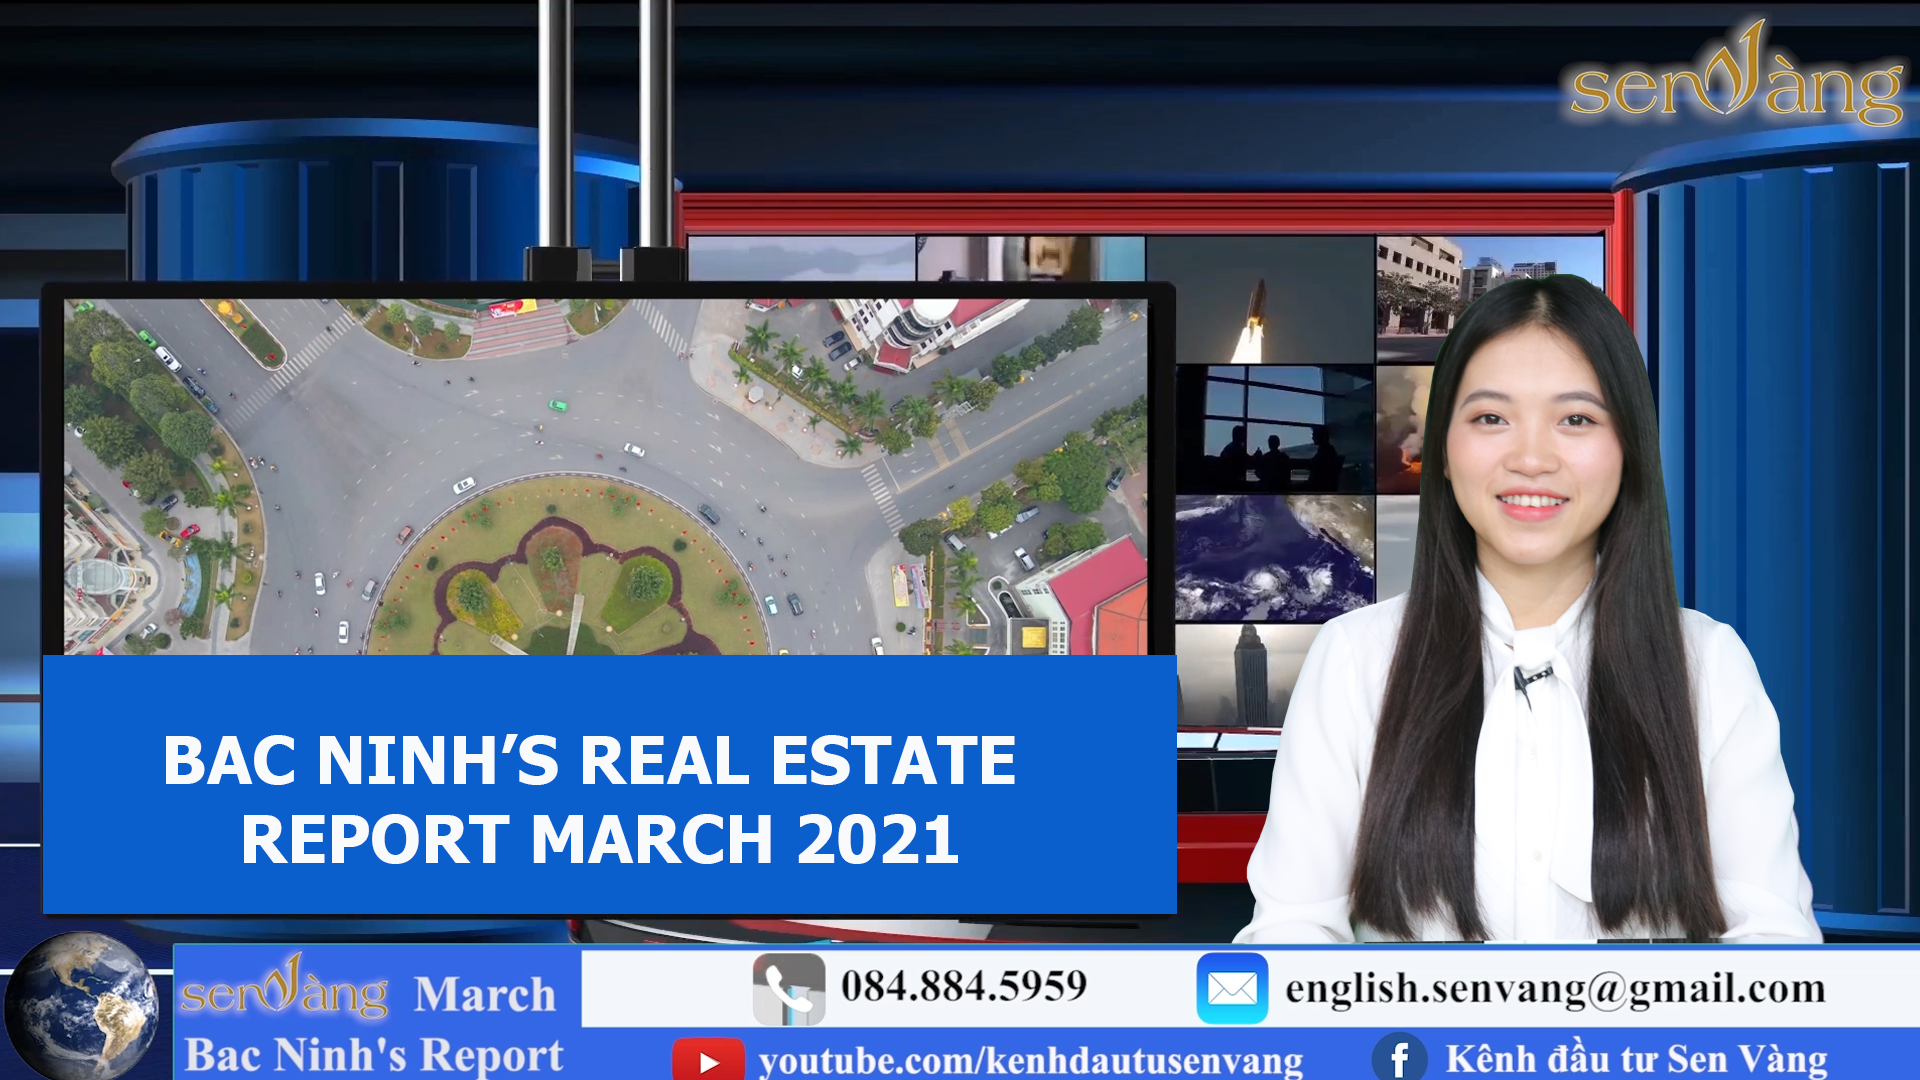 Bac Ninh's Real Estate Report March 2021